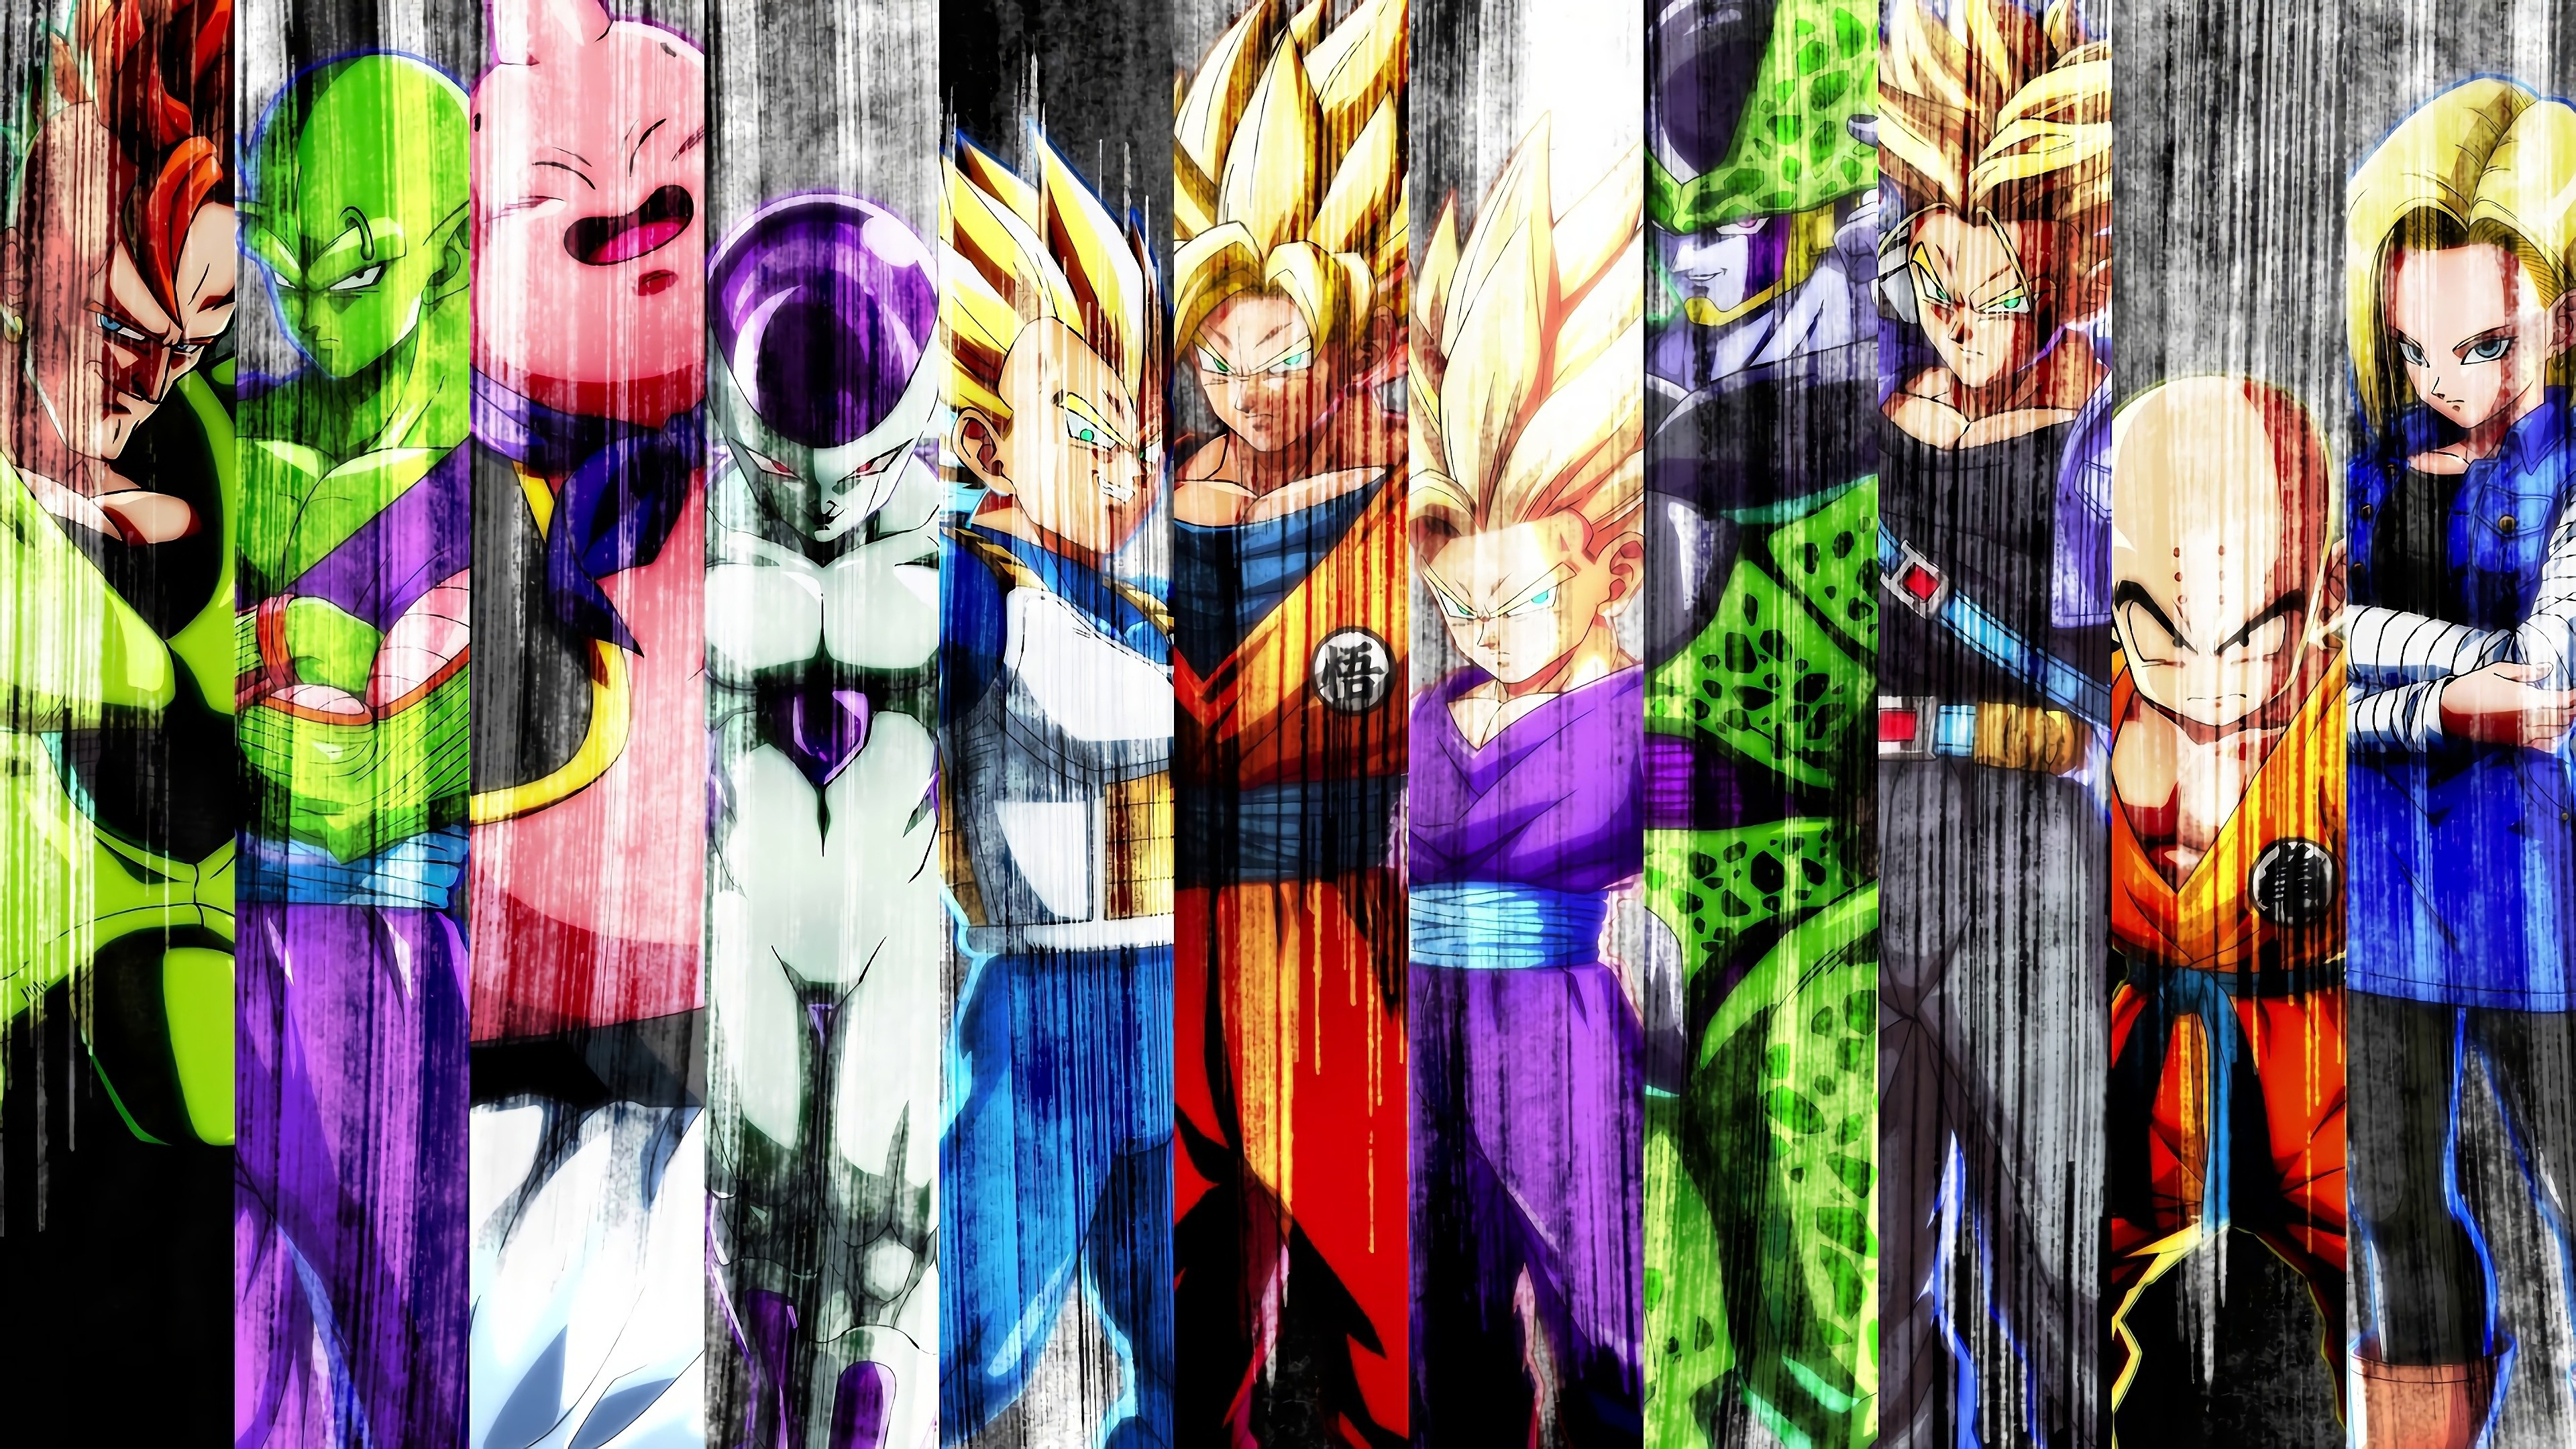 Download 3840x2400 Wallpaper All Characters Collage Dragon Ball